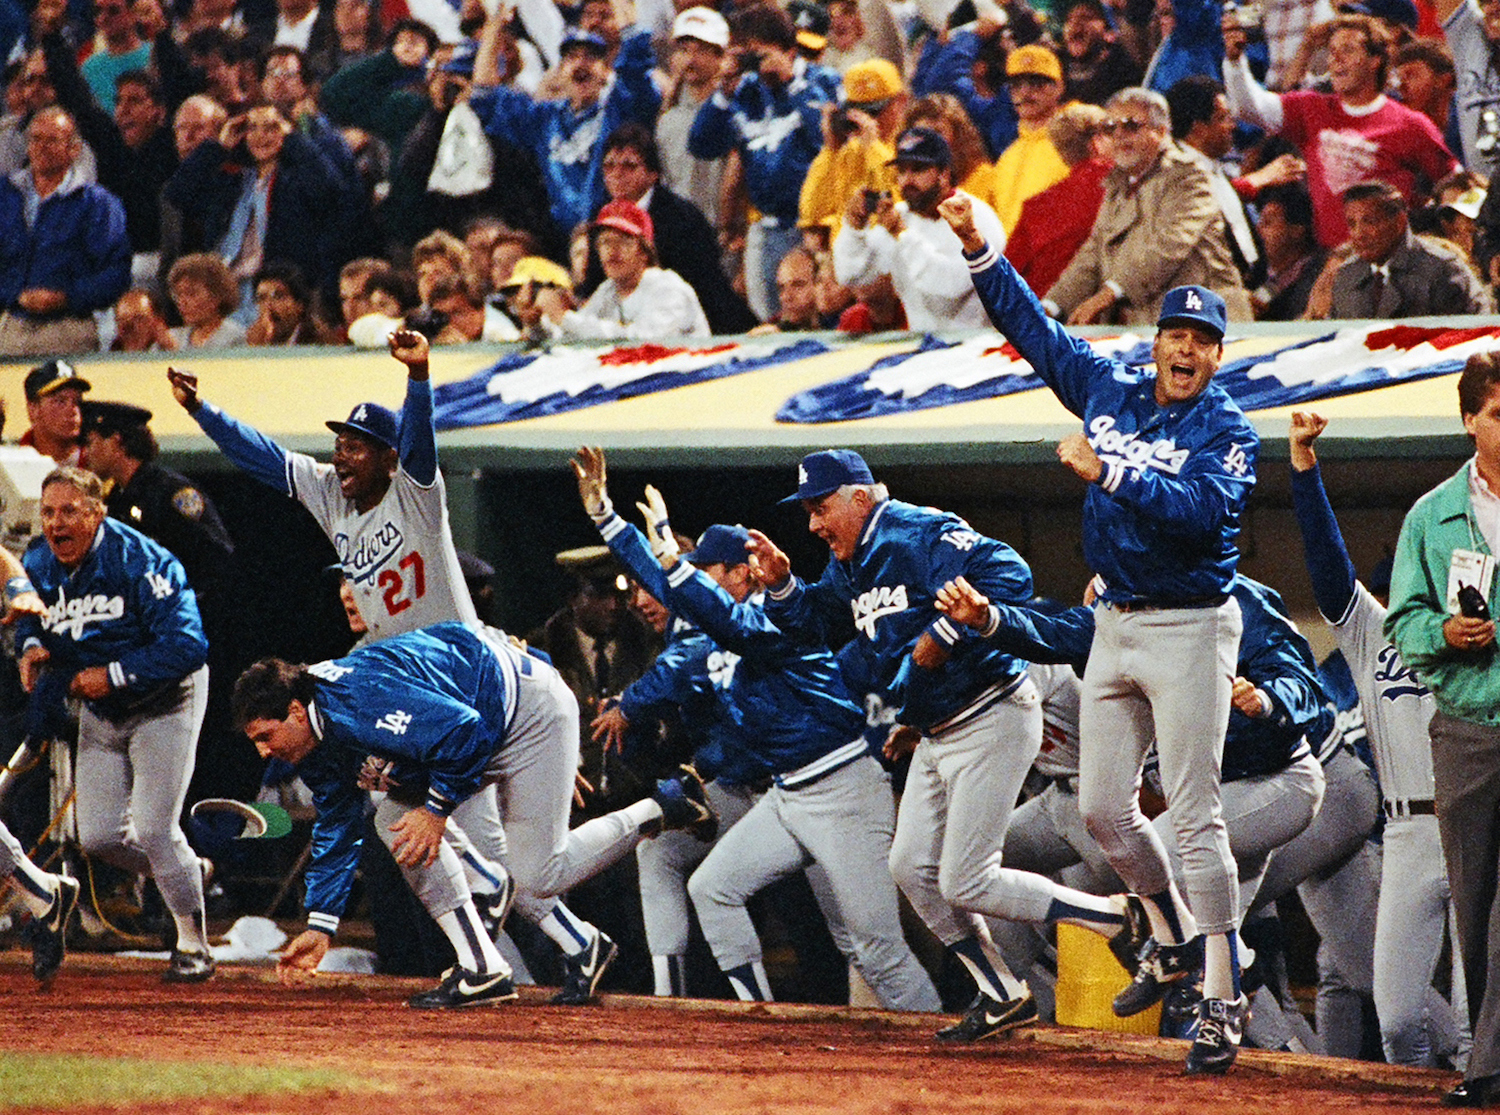 Los Angeles Dodgers won 1988 World Series.